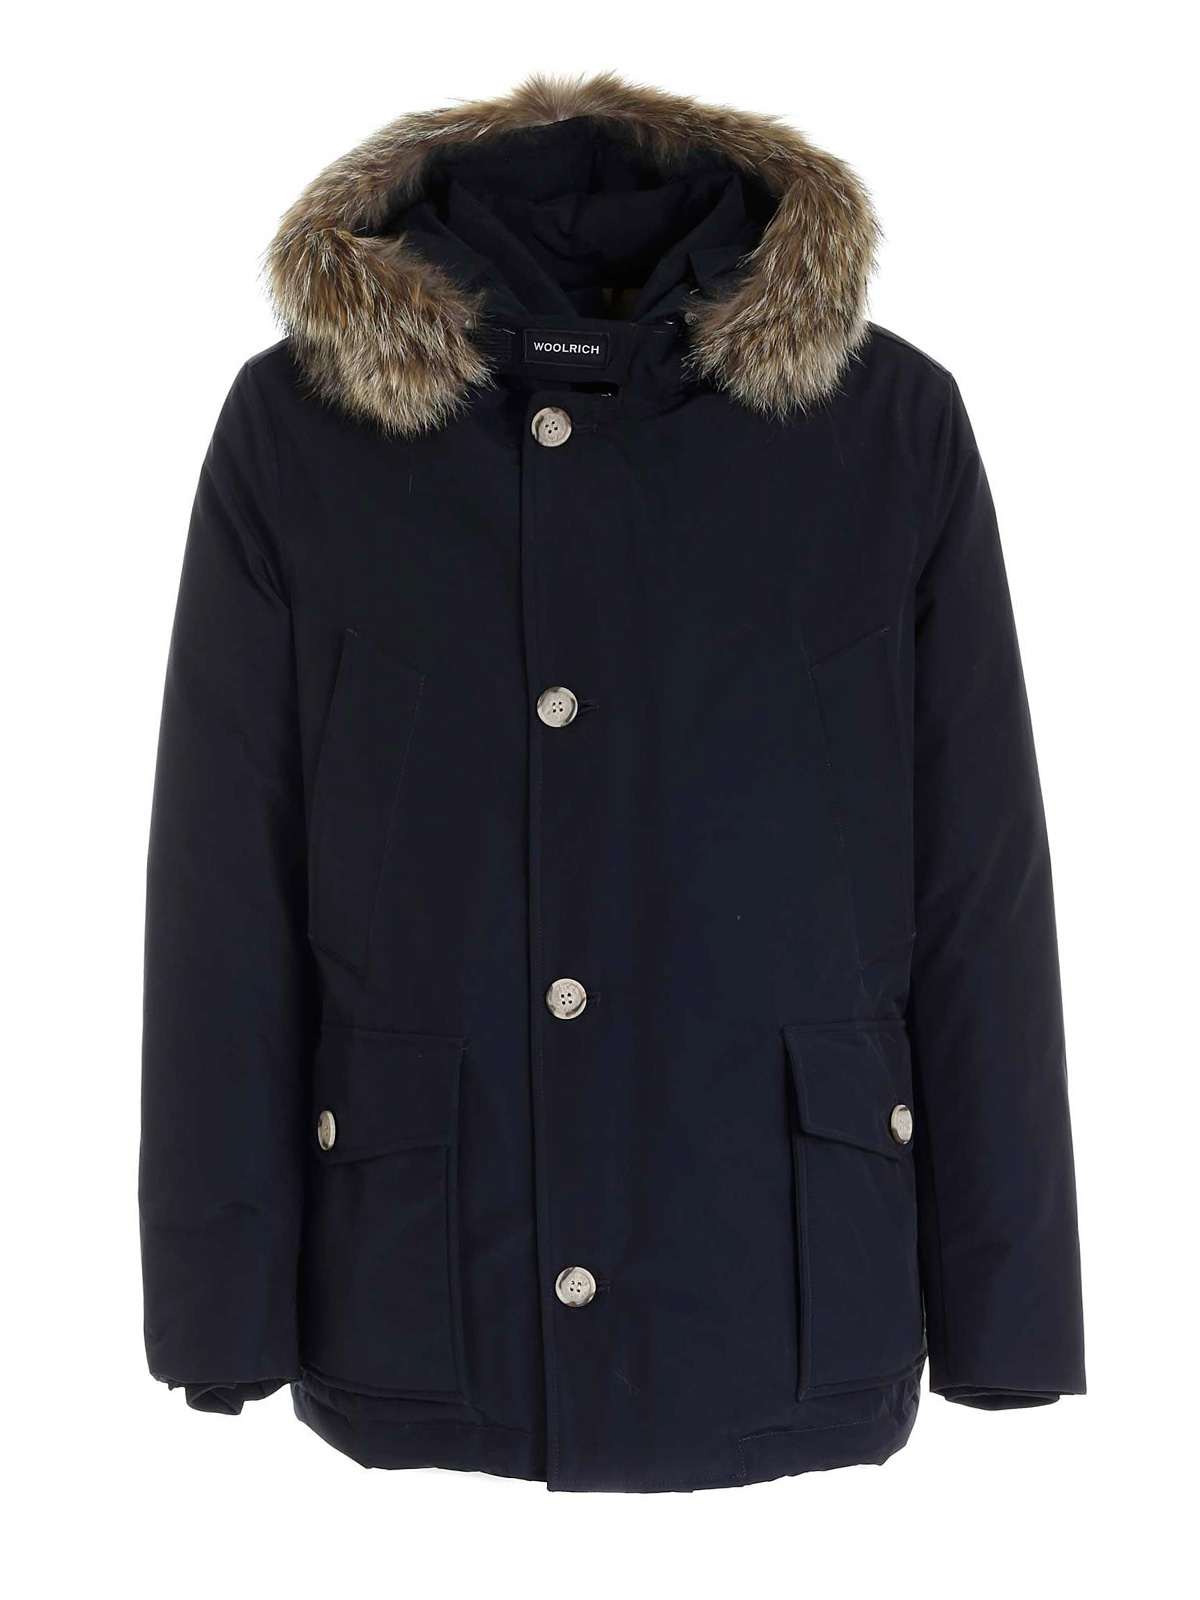 Picture of WOOLRICH | Men's Arctic Anorak Jacket